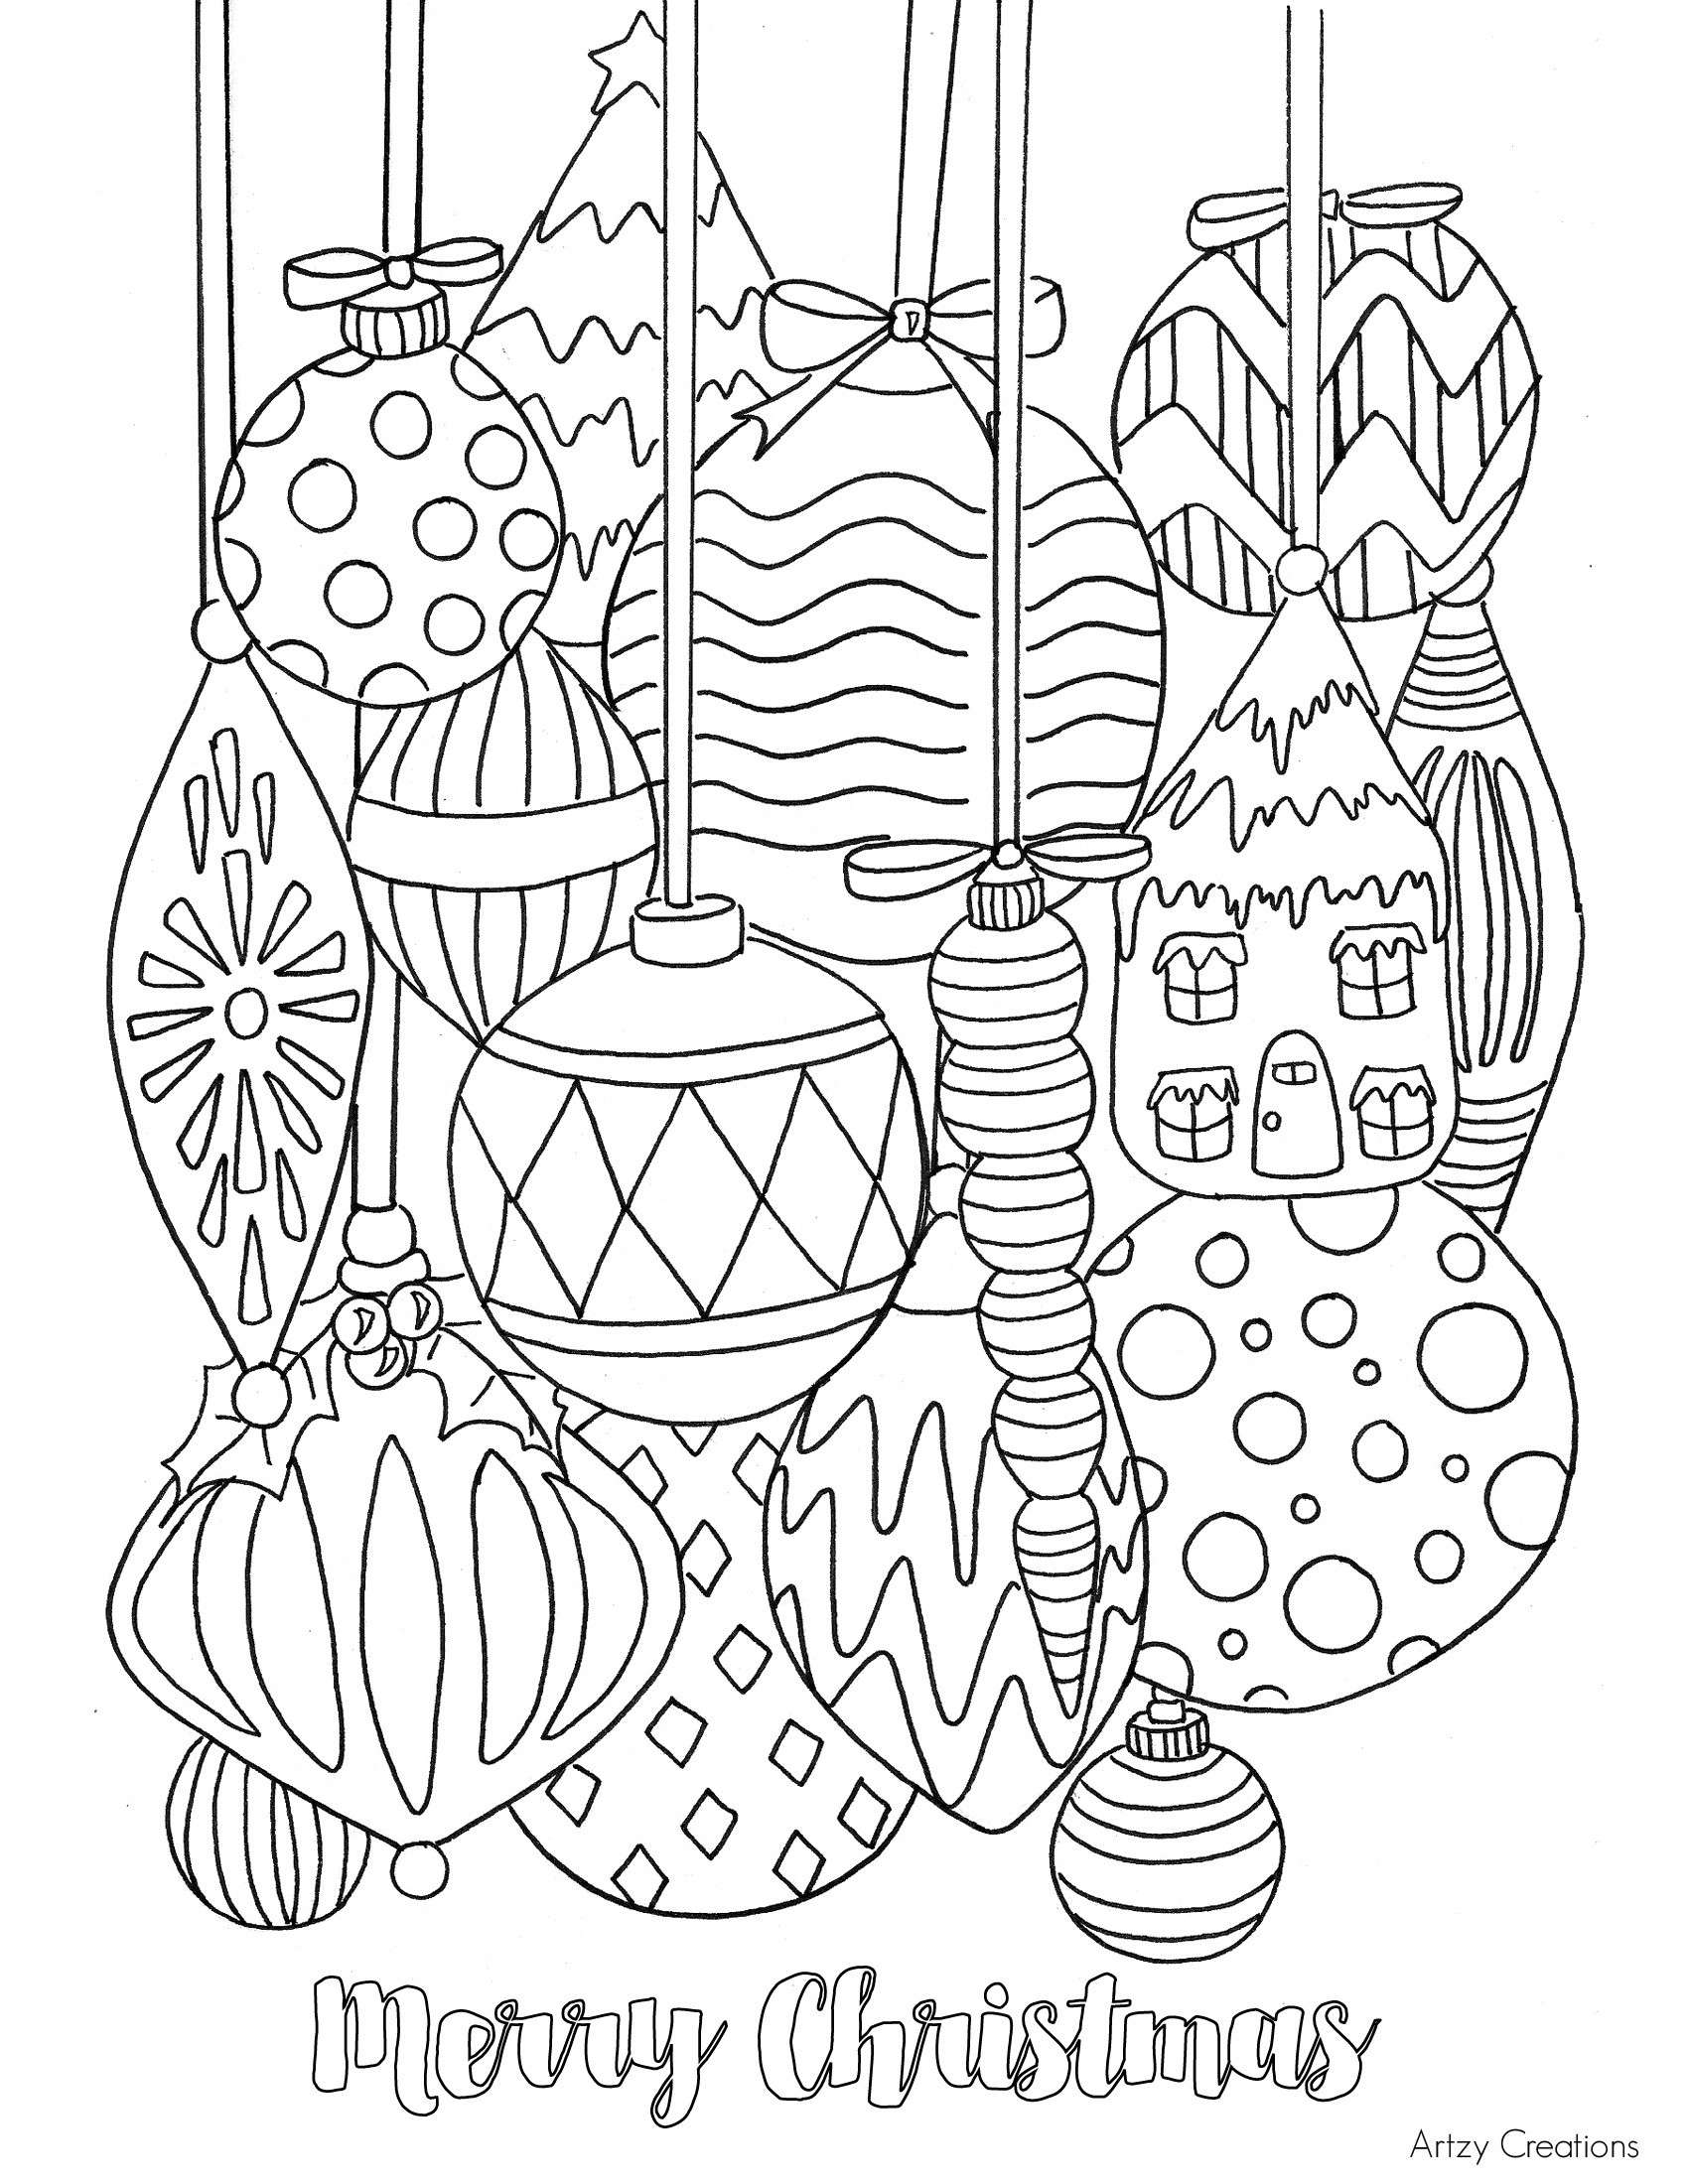 Merry Christmas Sign Coloring Pages With Santa